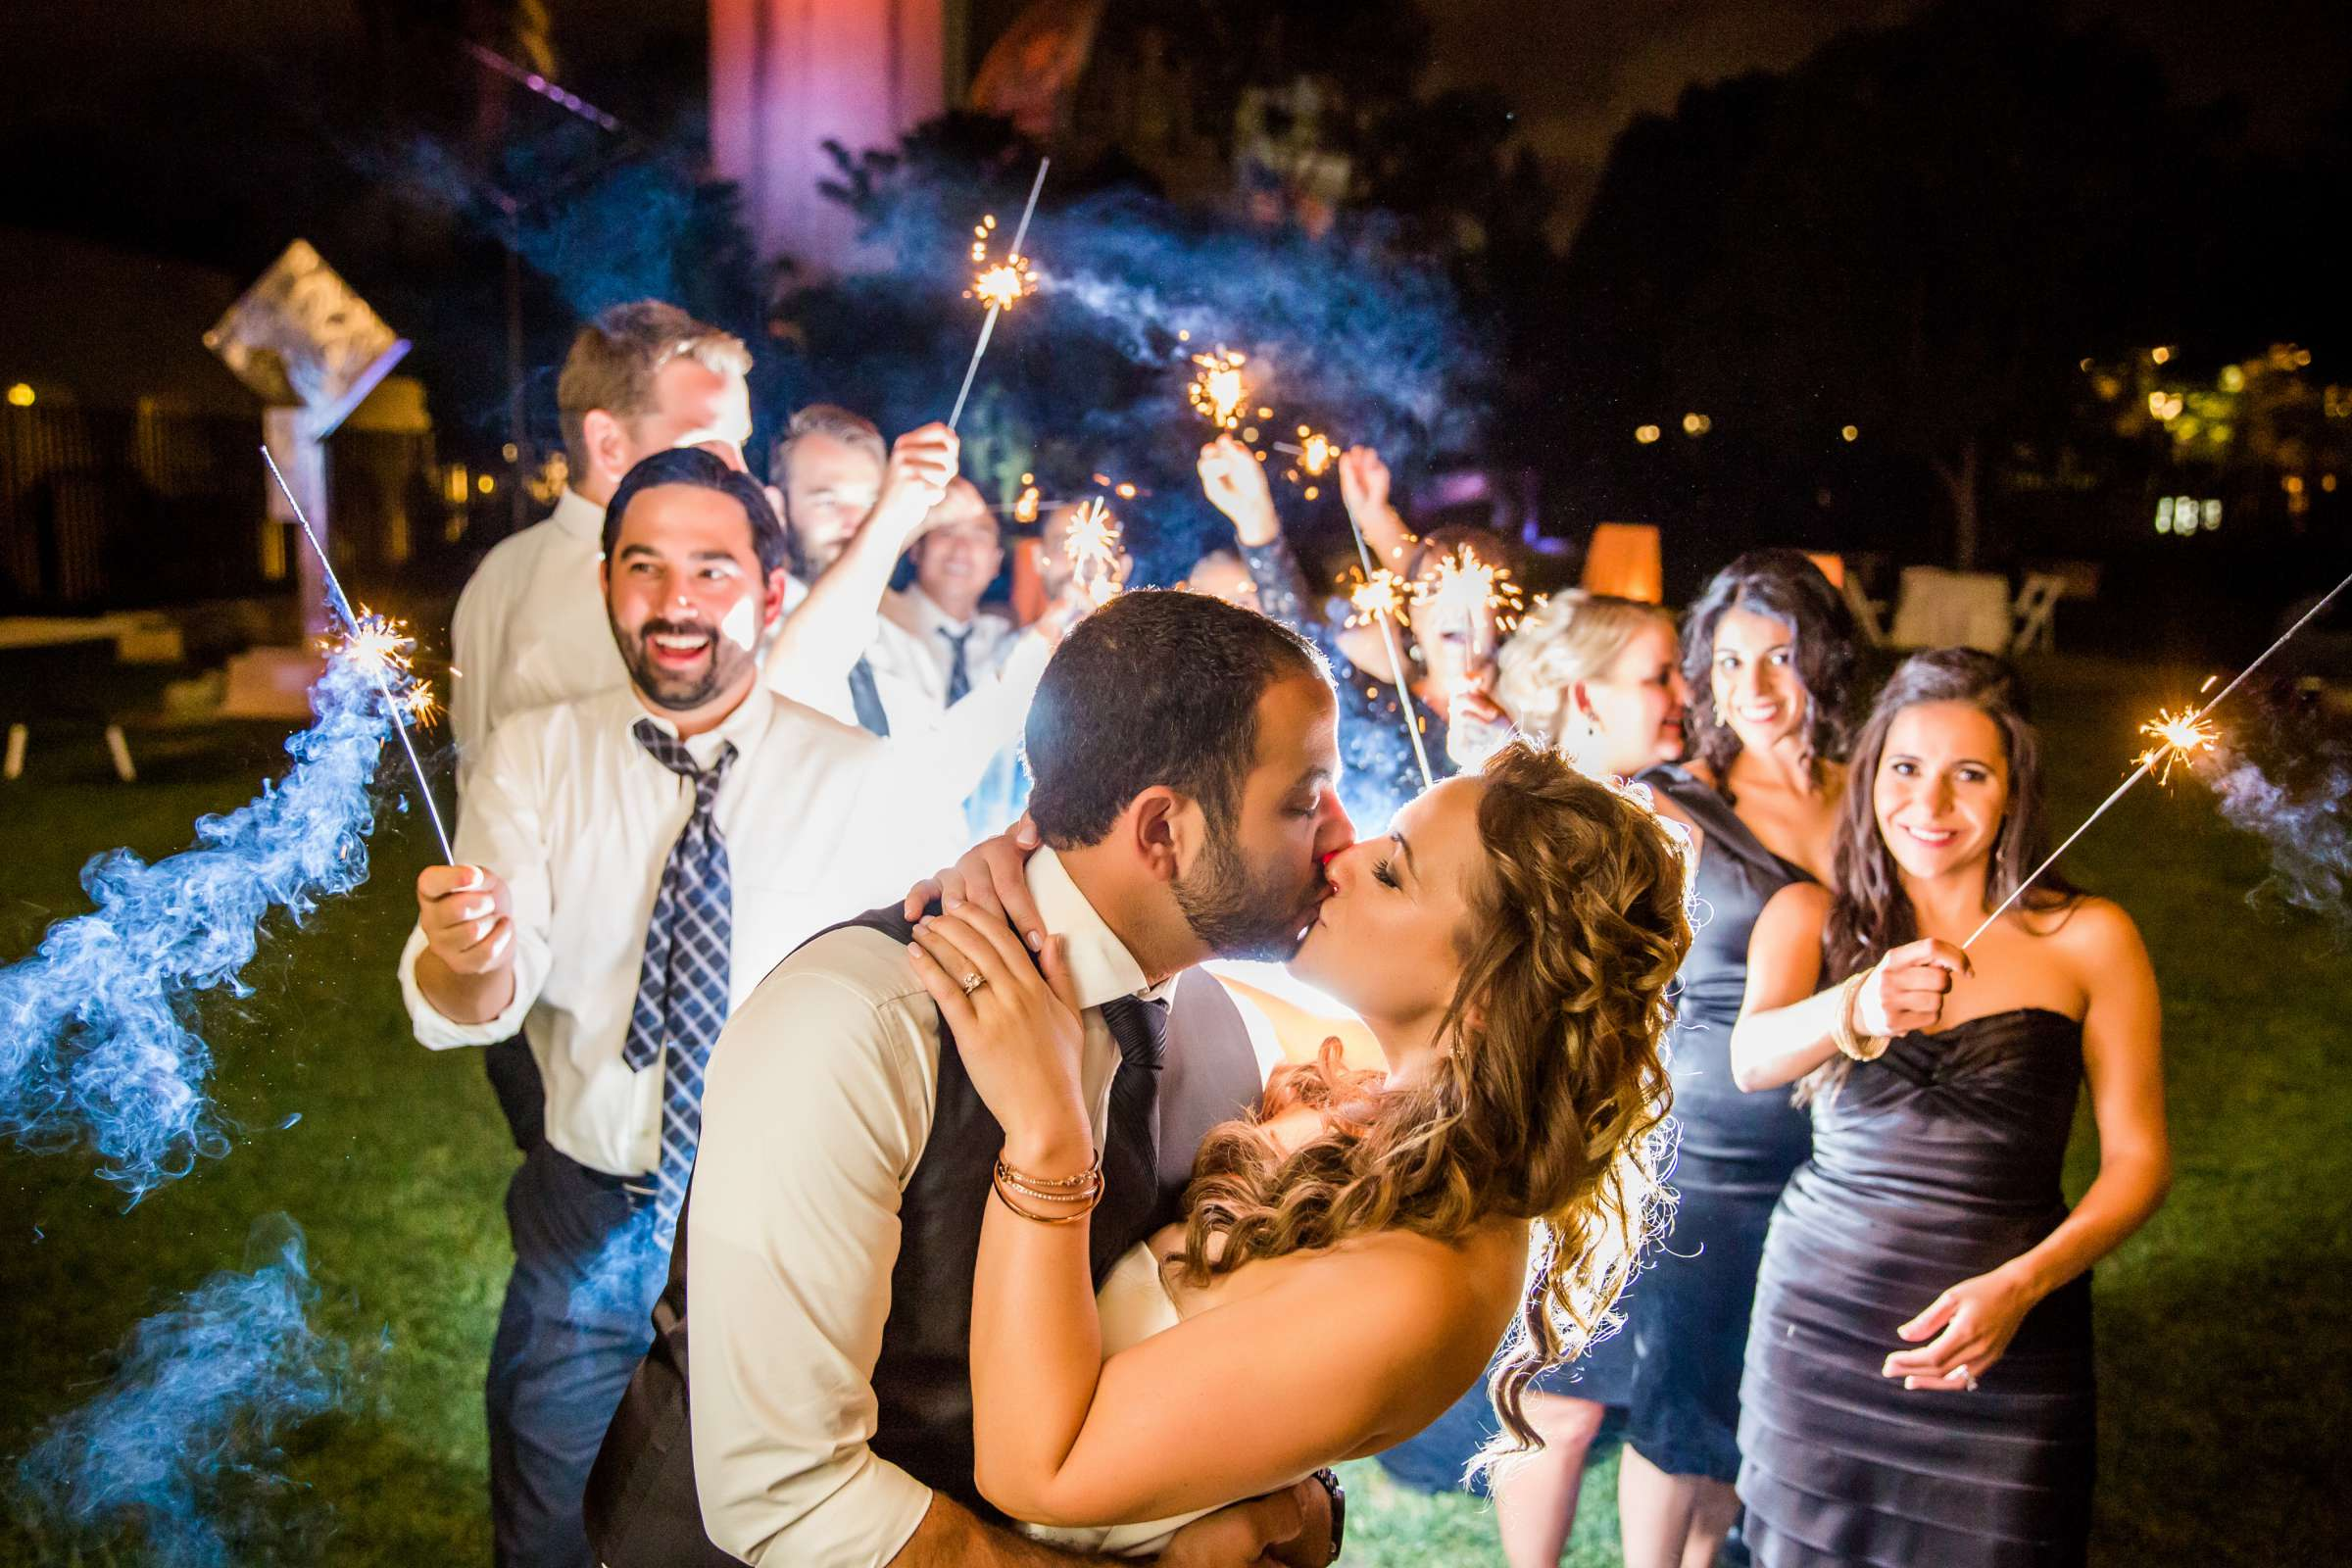 Sparklers, Night Shot, Bridal Party, Reception at San Diego Museum of Art Wedding coordinated by First Comes Love Weddings & Events, Ruthie and Larry Wedding Photo #236740 by True Photography